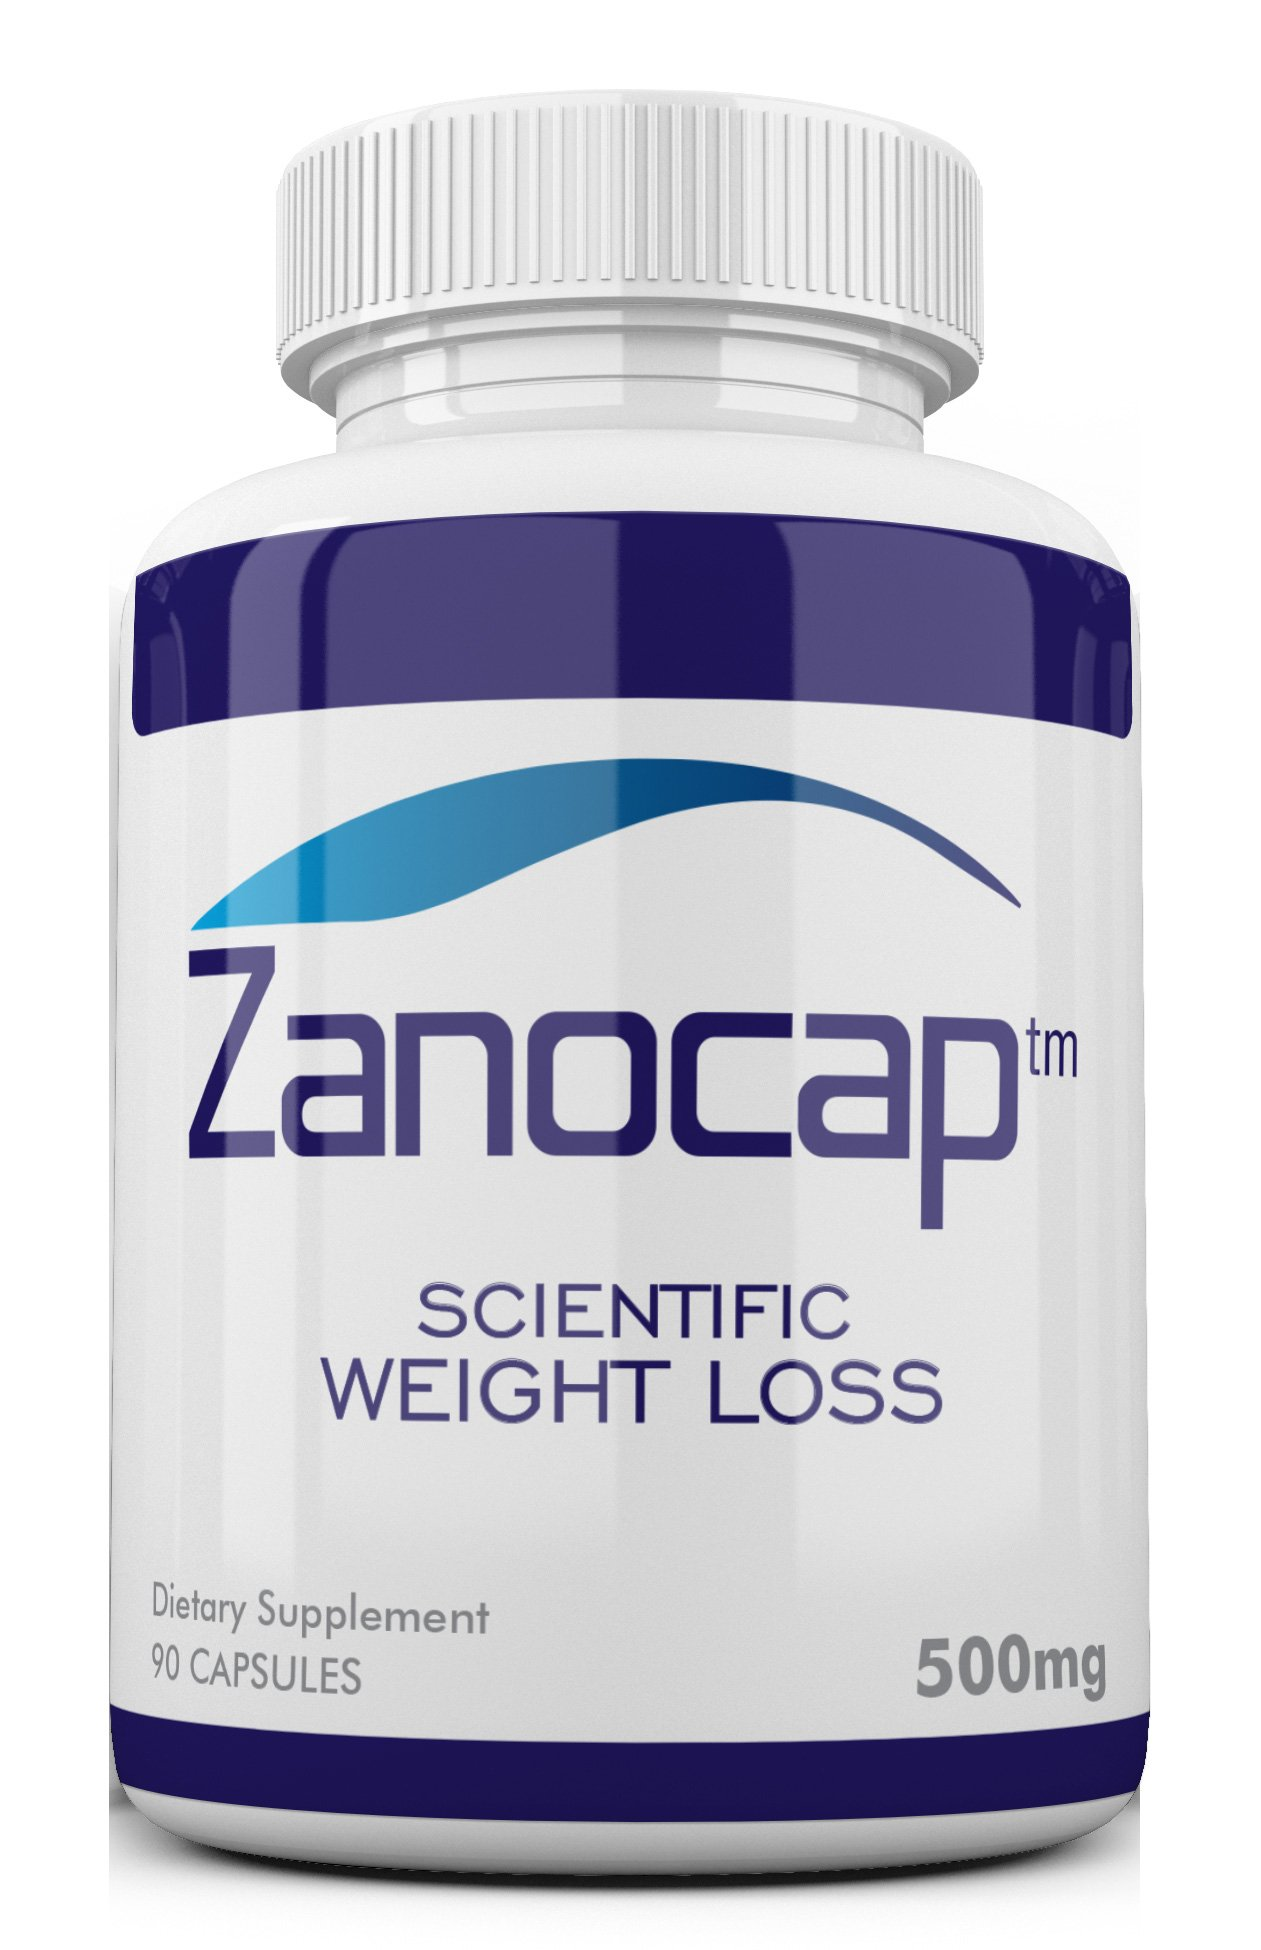 Cabbage Soup Zanocap Diet Weight Loss Pills (90 Caps) by Selmedica Healthcare by Selmedica Healthcare